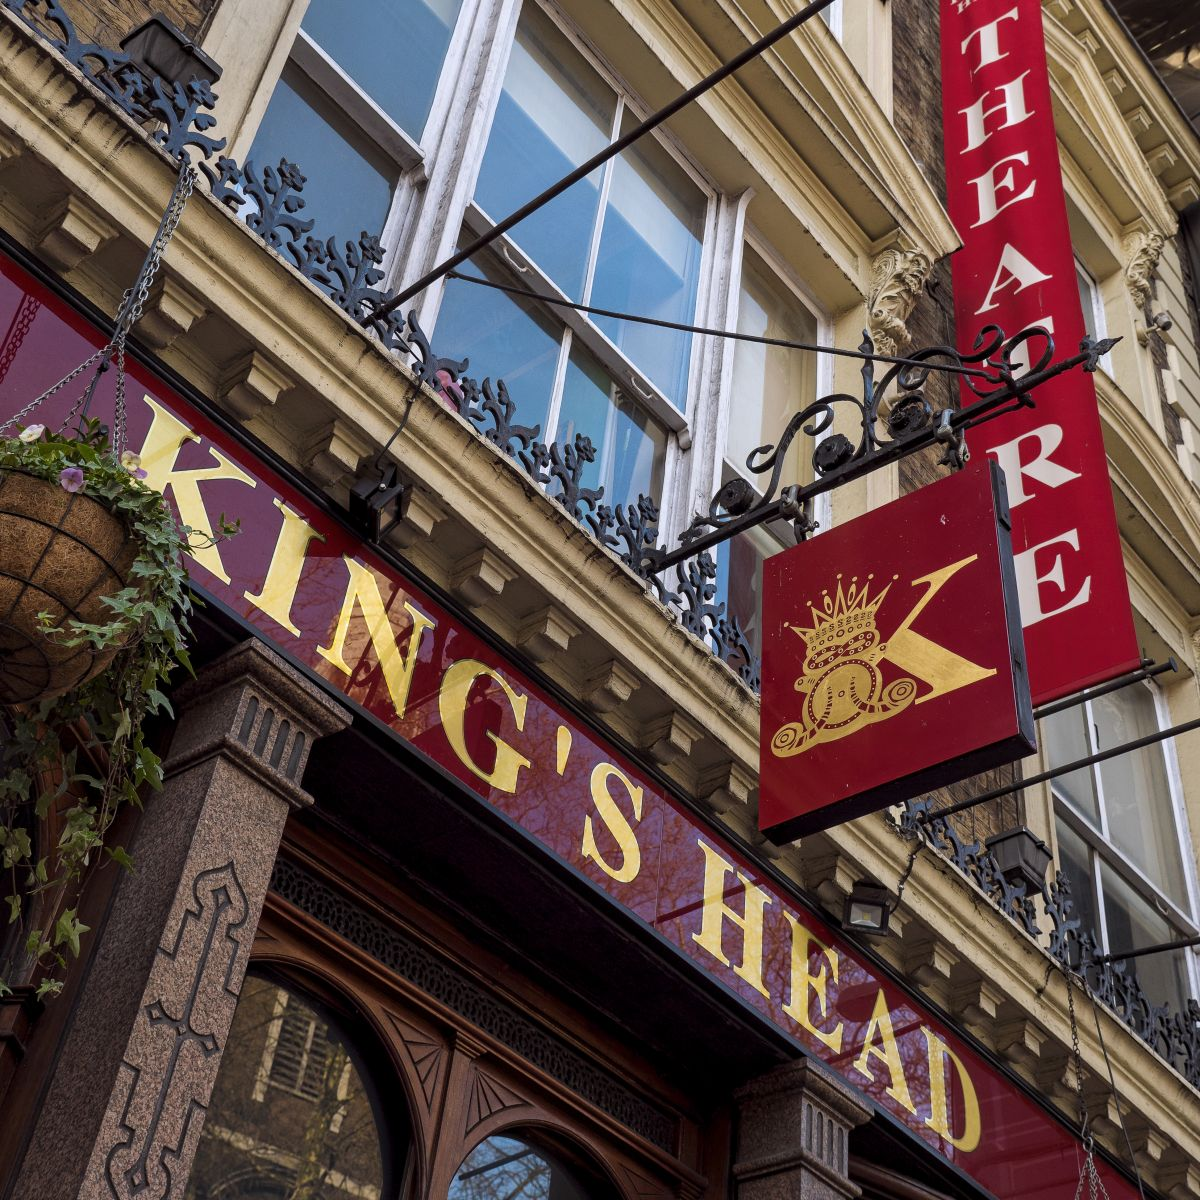 A Statement from the King's Head Theatre April 2020